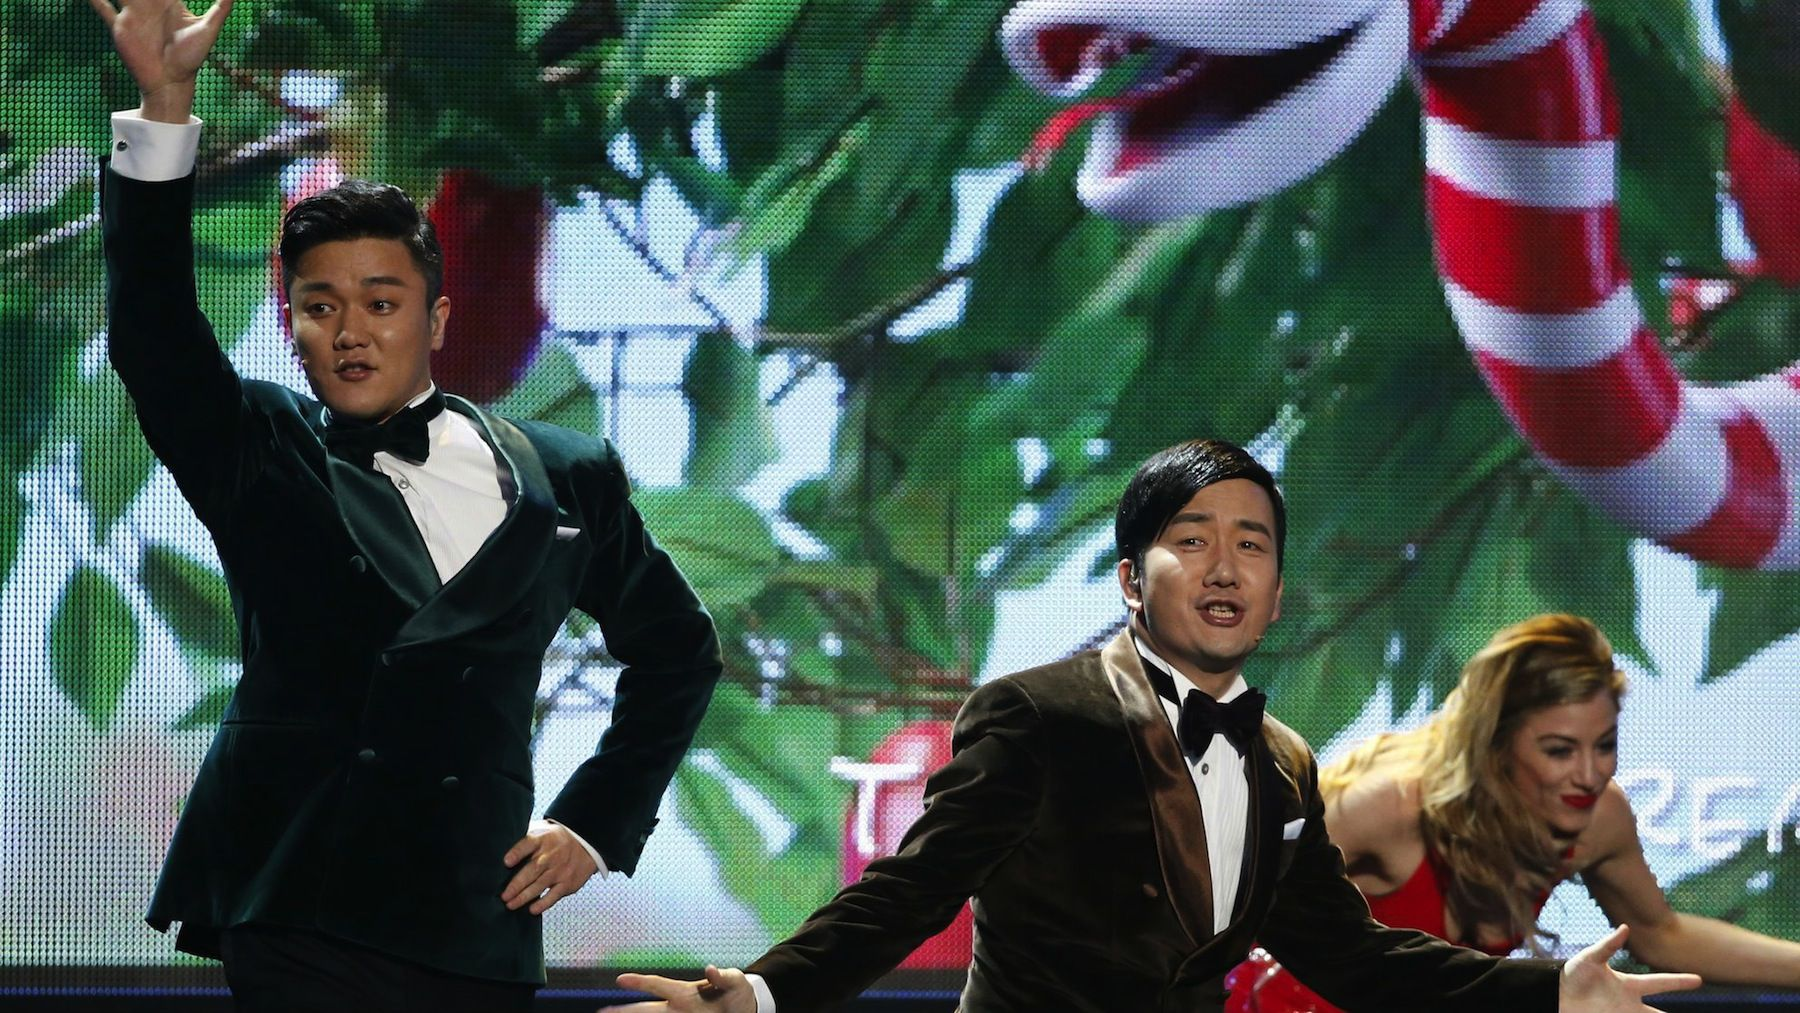 """The Chopstick brothers performing """"Little Apple"""" at the American Music Awards."""